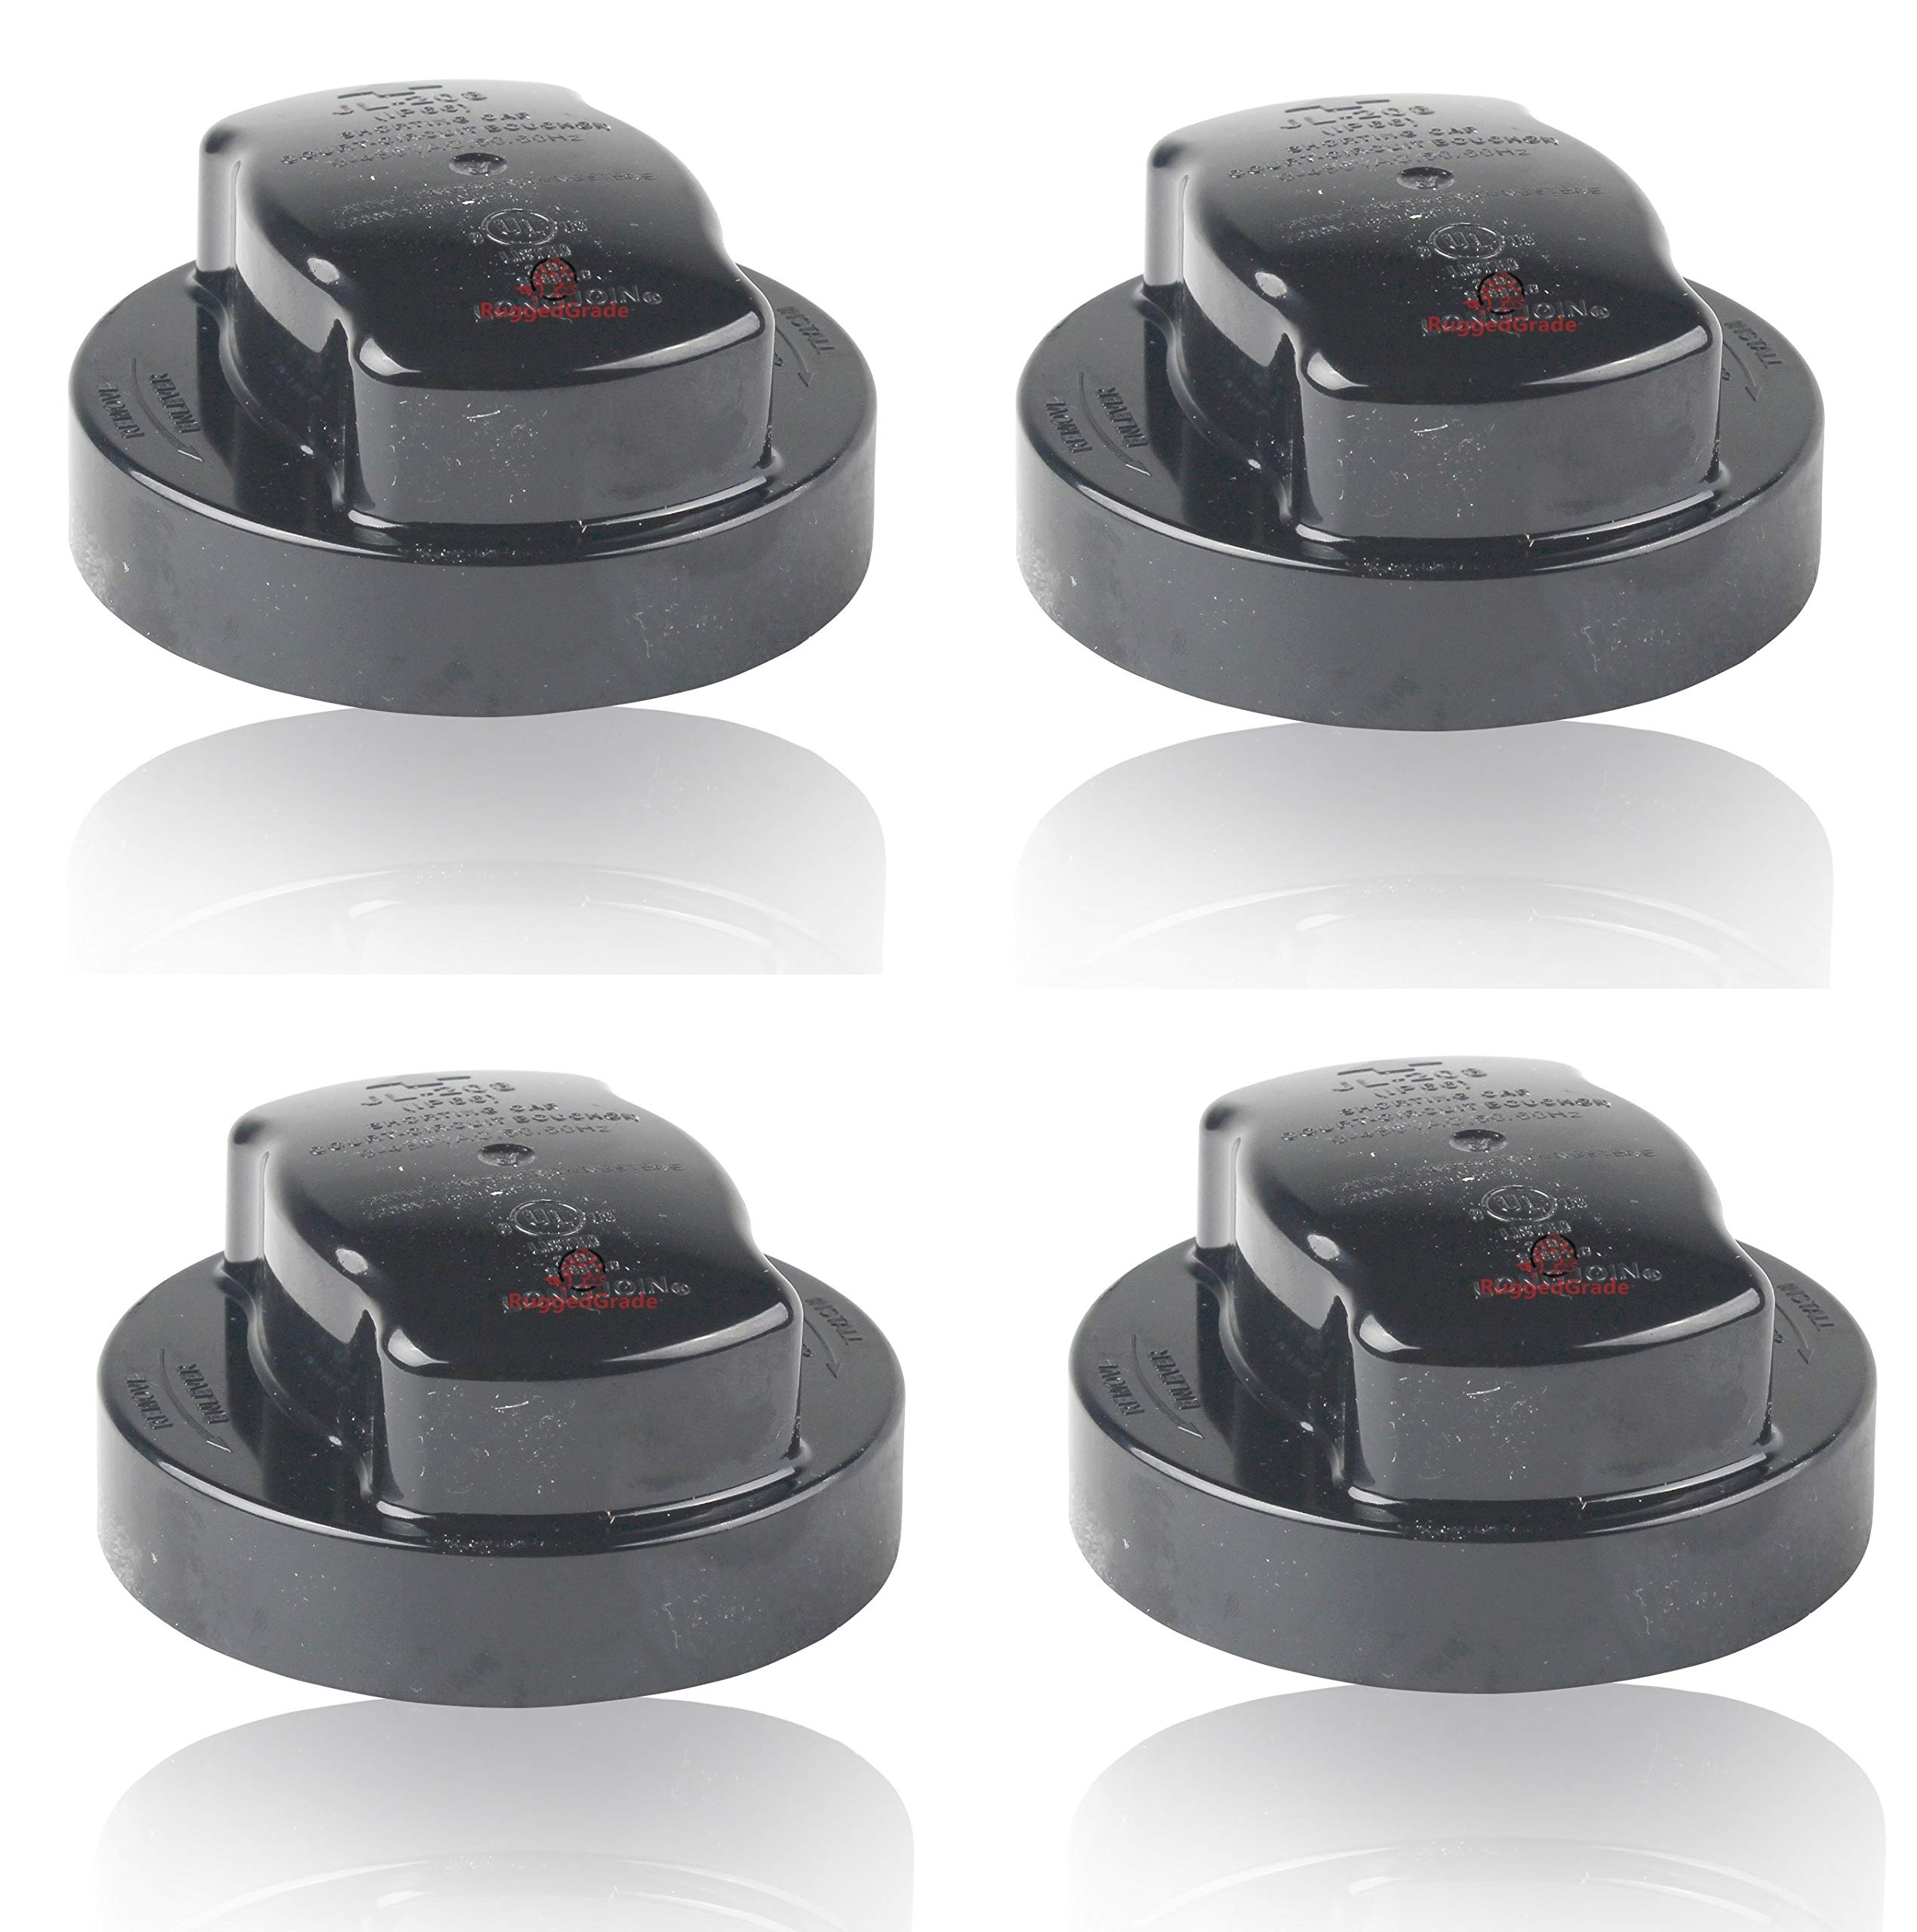 4 Pack - Photocell Bypass Cap/Shorting Cap -for 3 Prong Circular Dusk to Dawn Sensors - Quantity 4 of 79-112 Bypass Cap for 3 Prong Lights